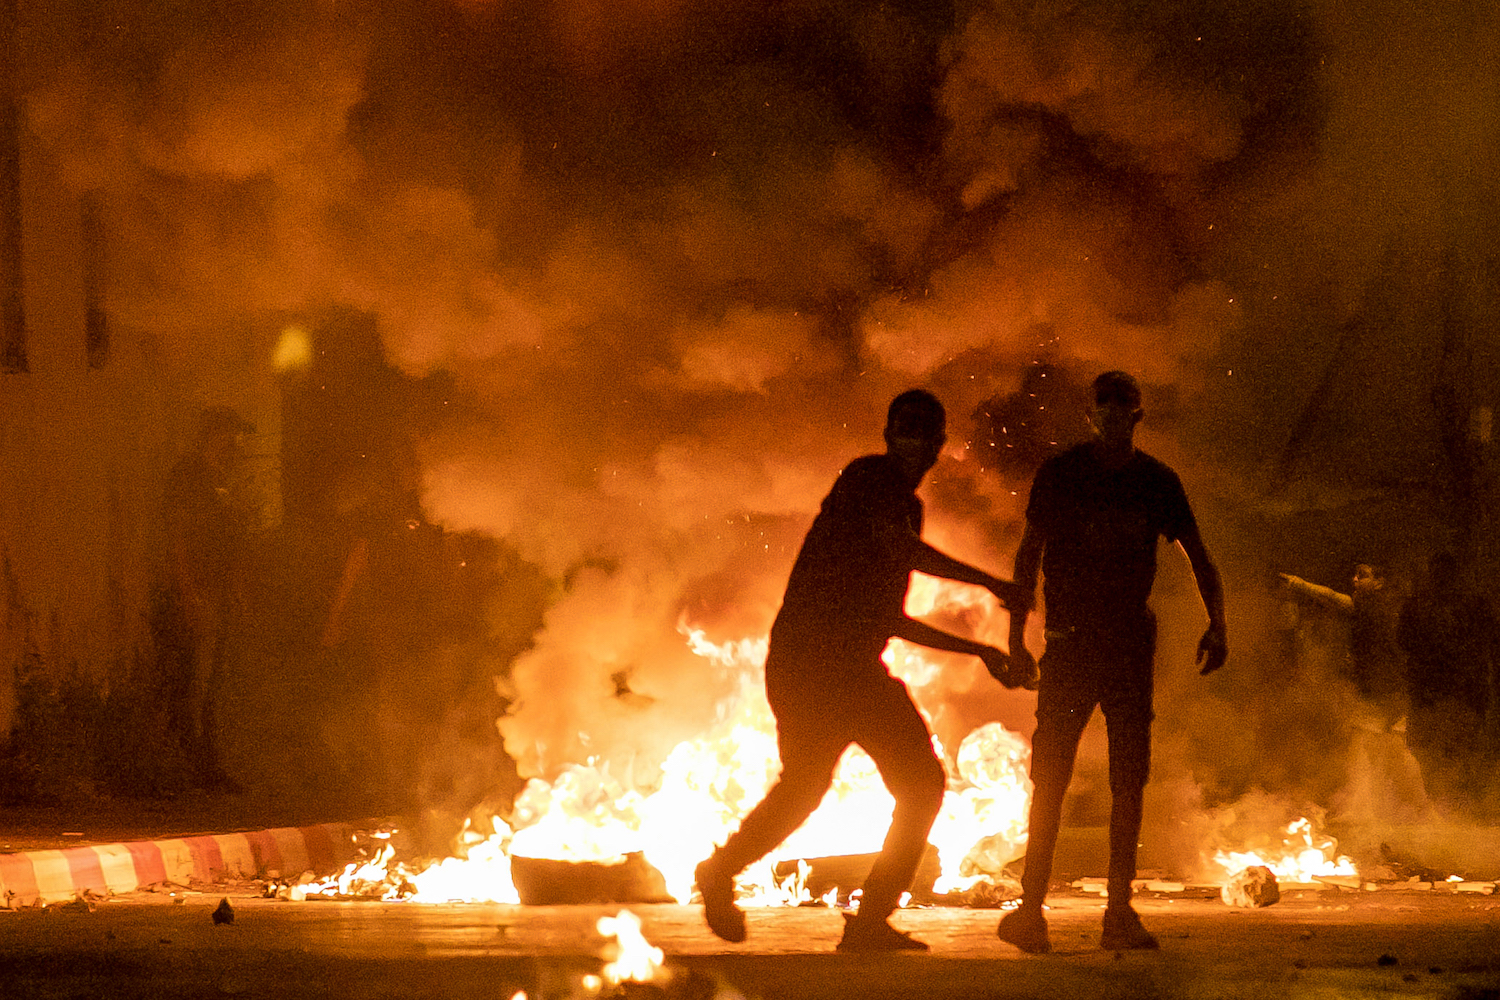 Protesters throw rocks and burn tires during a protest over tensions in Jerusalem, Ramla, May 10, 2021. (Yossi Aloni/Flash90)